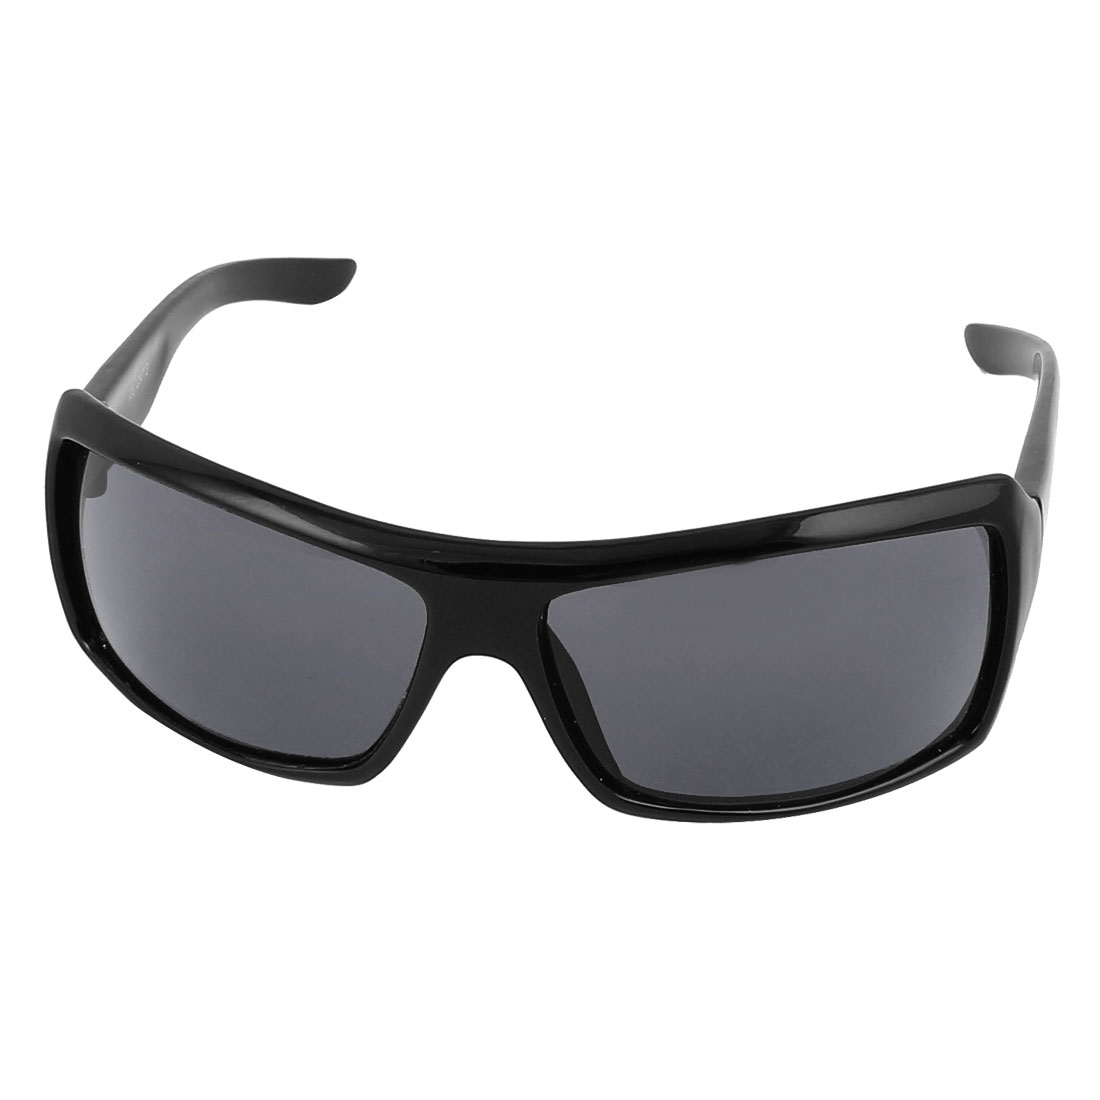 Mens Plastic Frame Outdoor Driving Eyewear Sunglasses Eye Protector Black